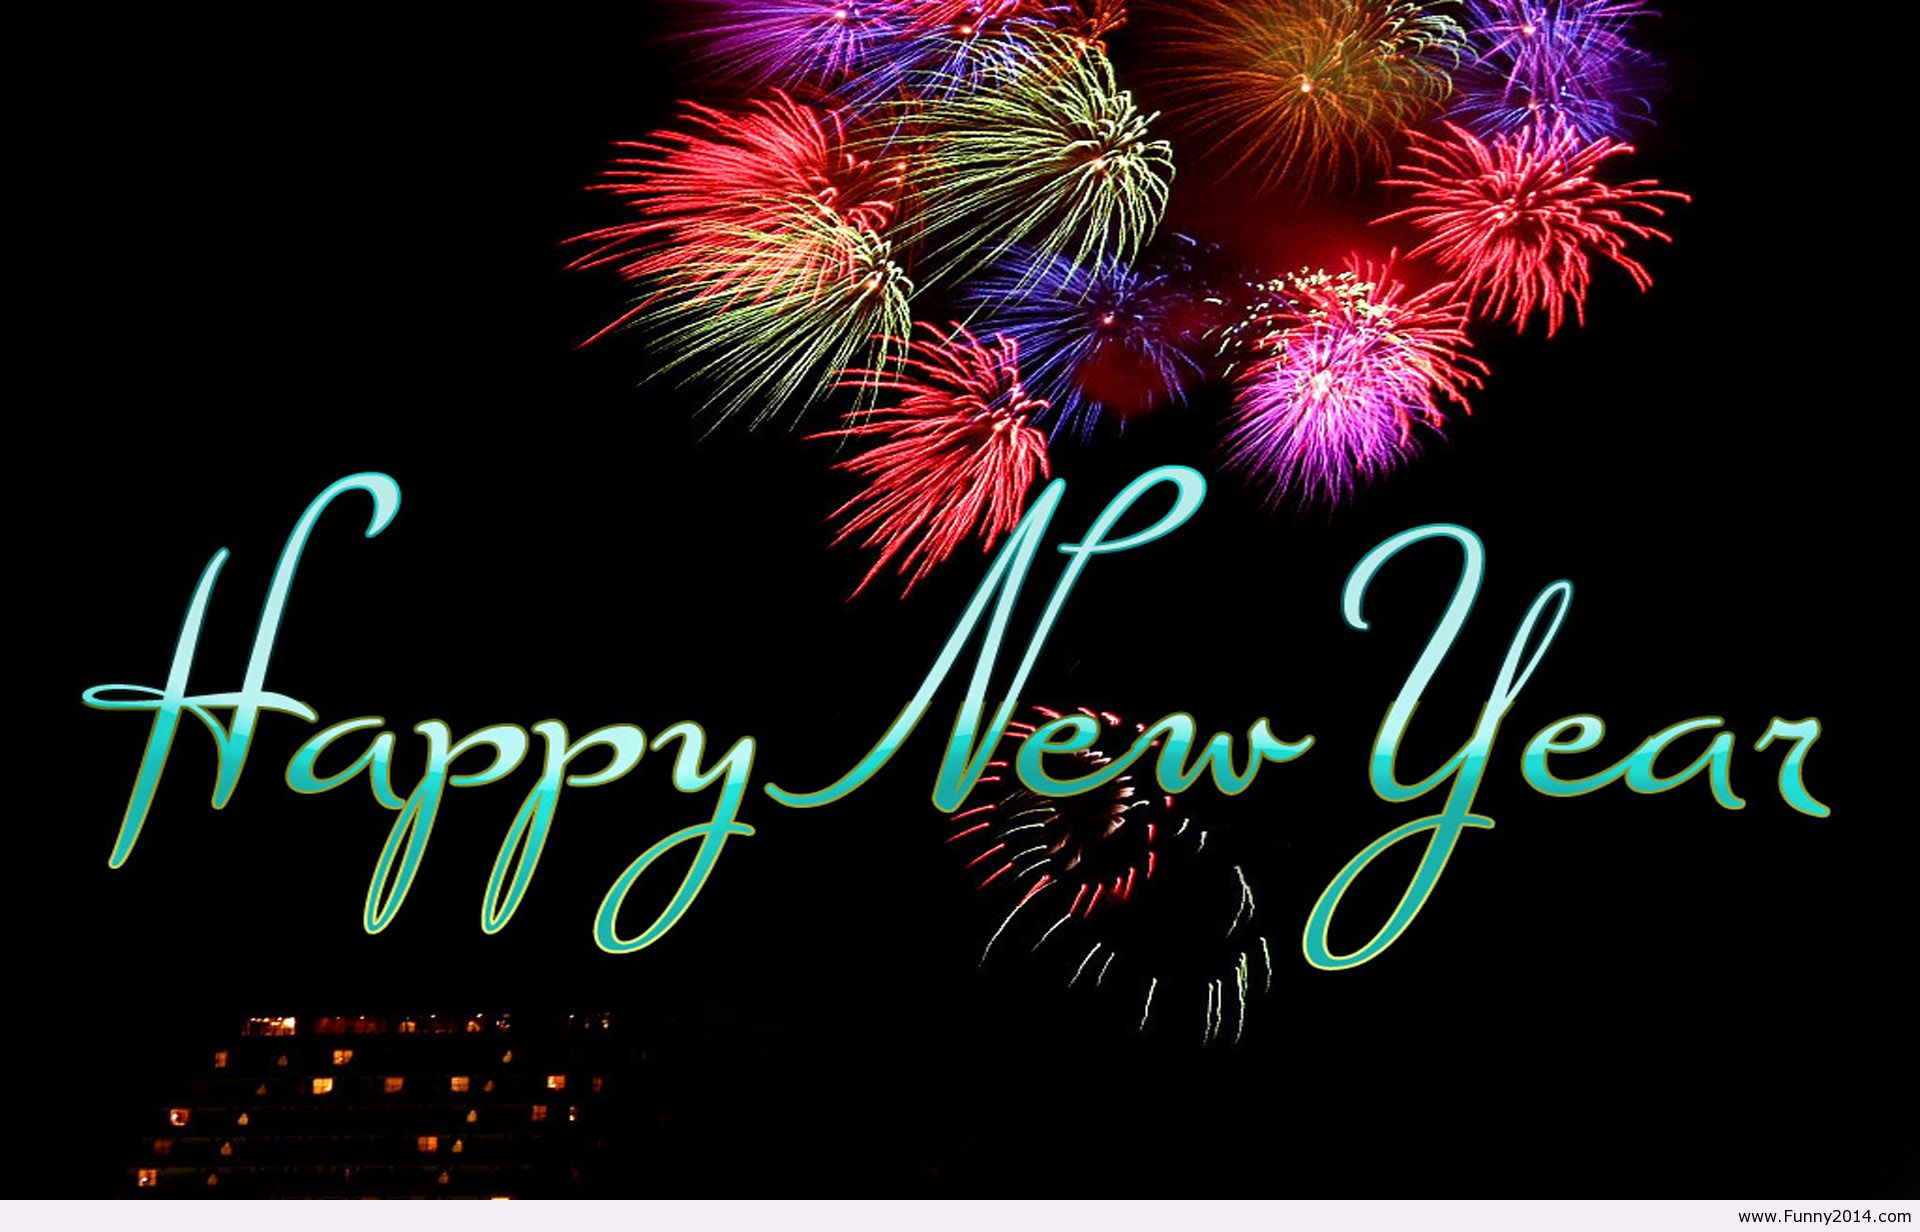 Happy-new-year-2014-free